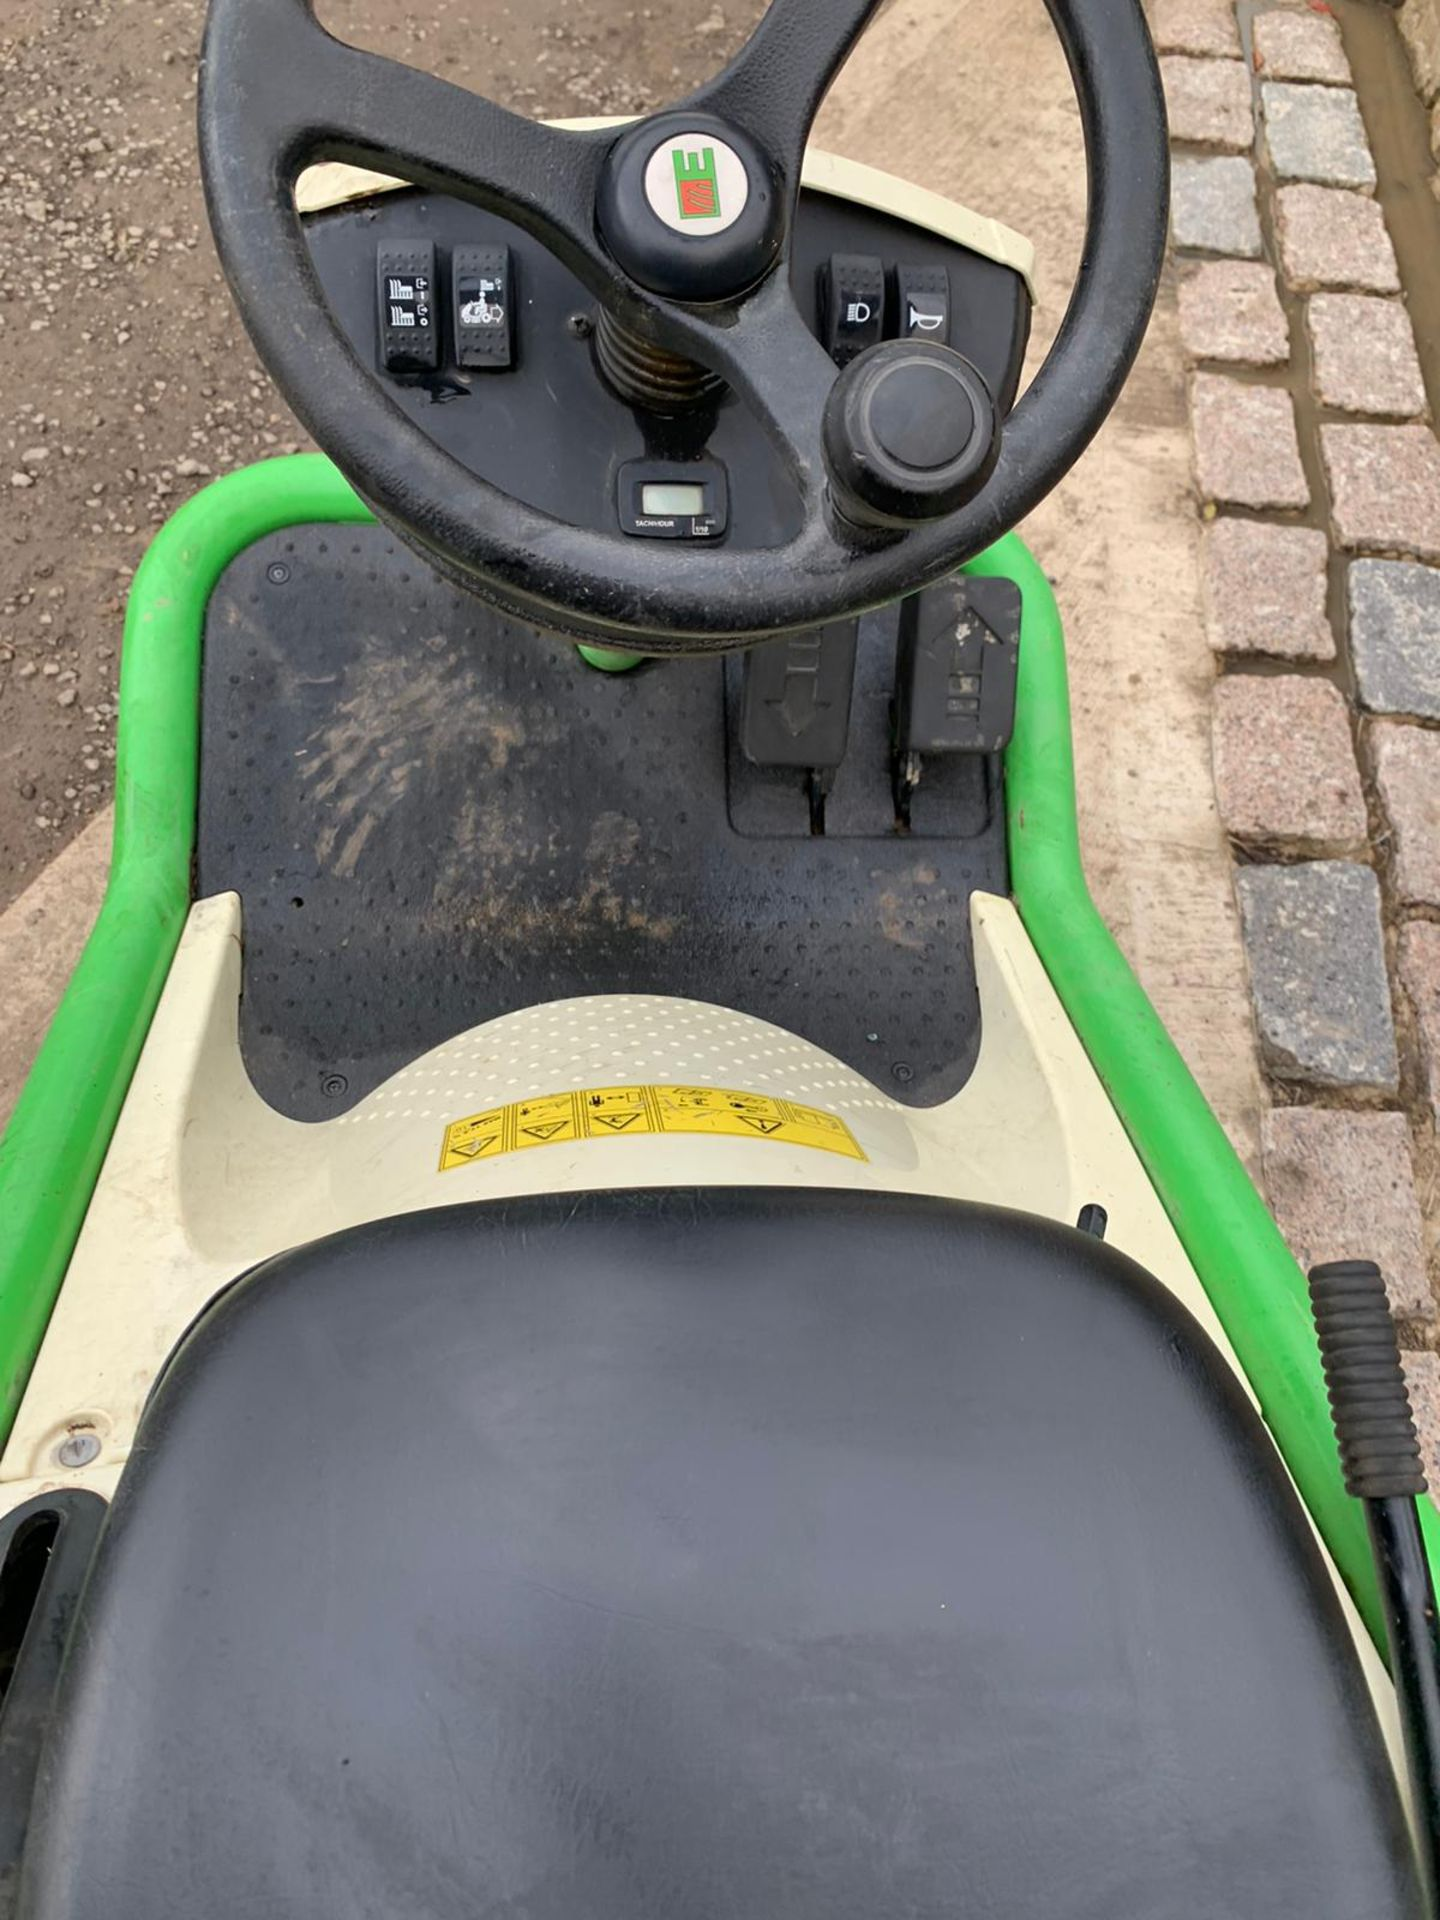 2015 ETESIA HYDRO 80 RIDE ON LAWN MOWER, RUNS, DRIVES AND CUTS *PLUS VAT* - Image 2 of 5